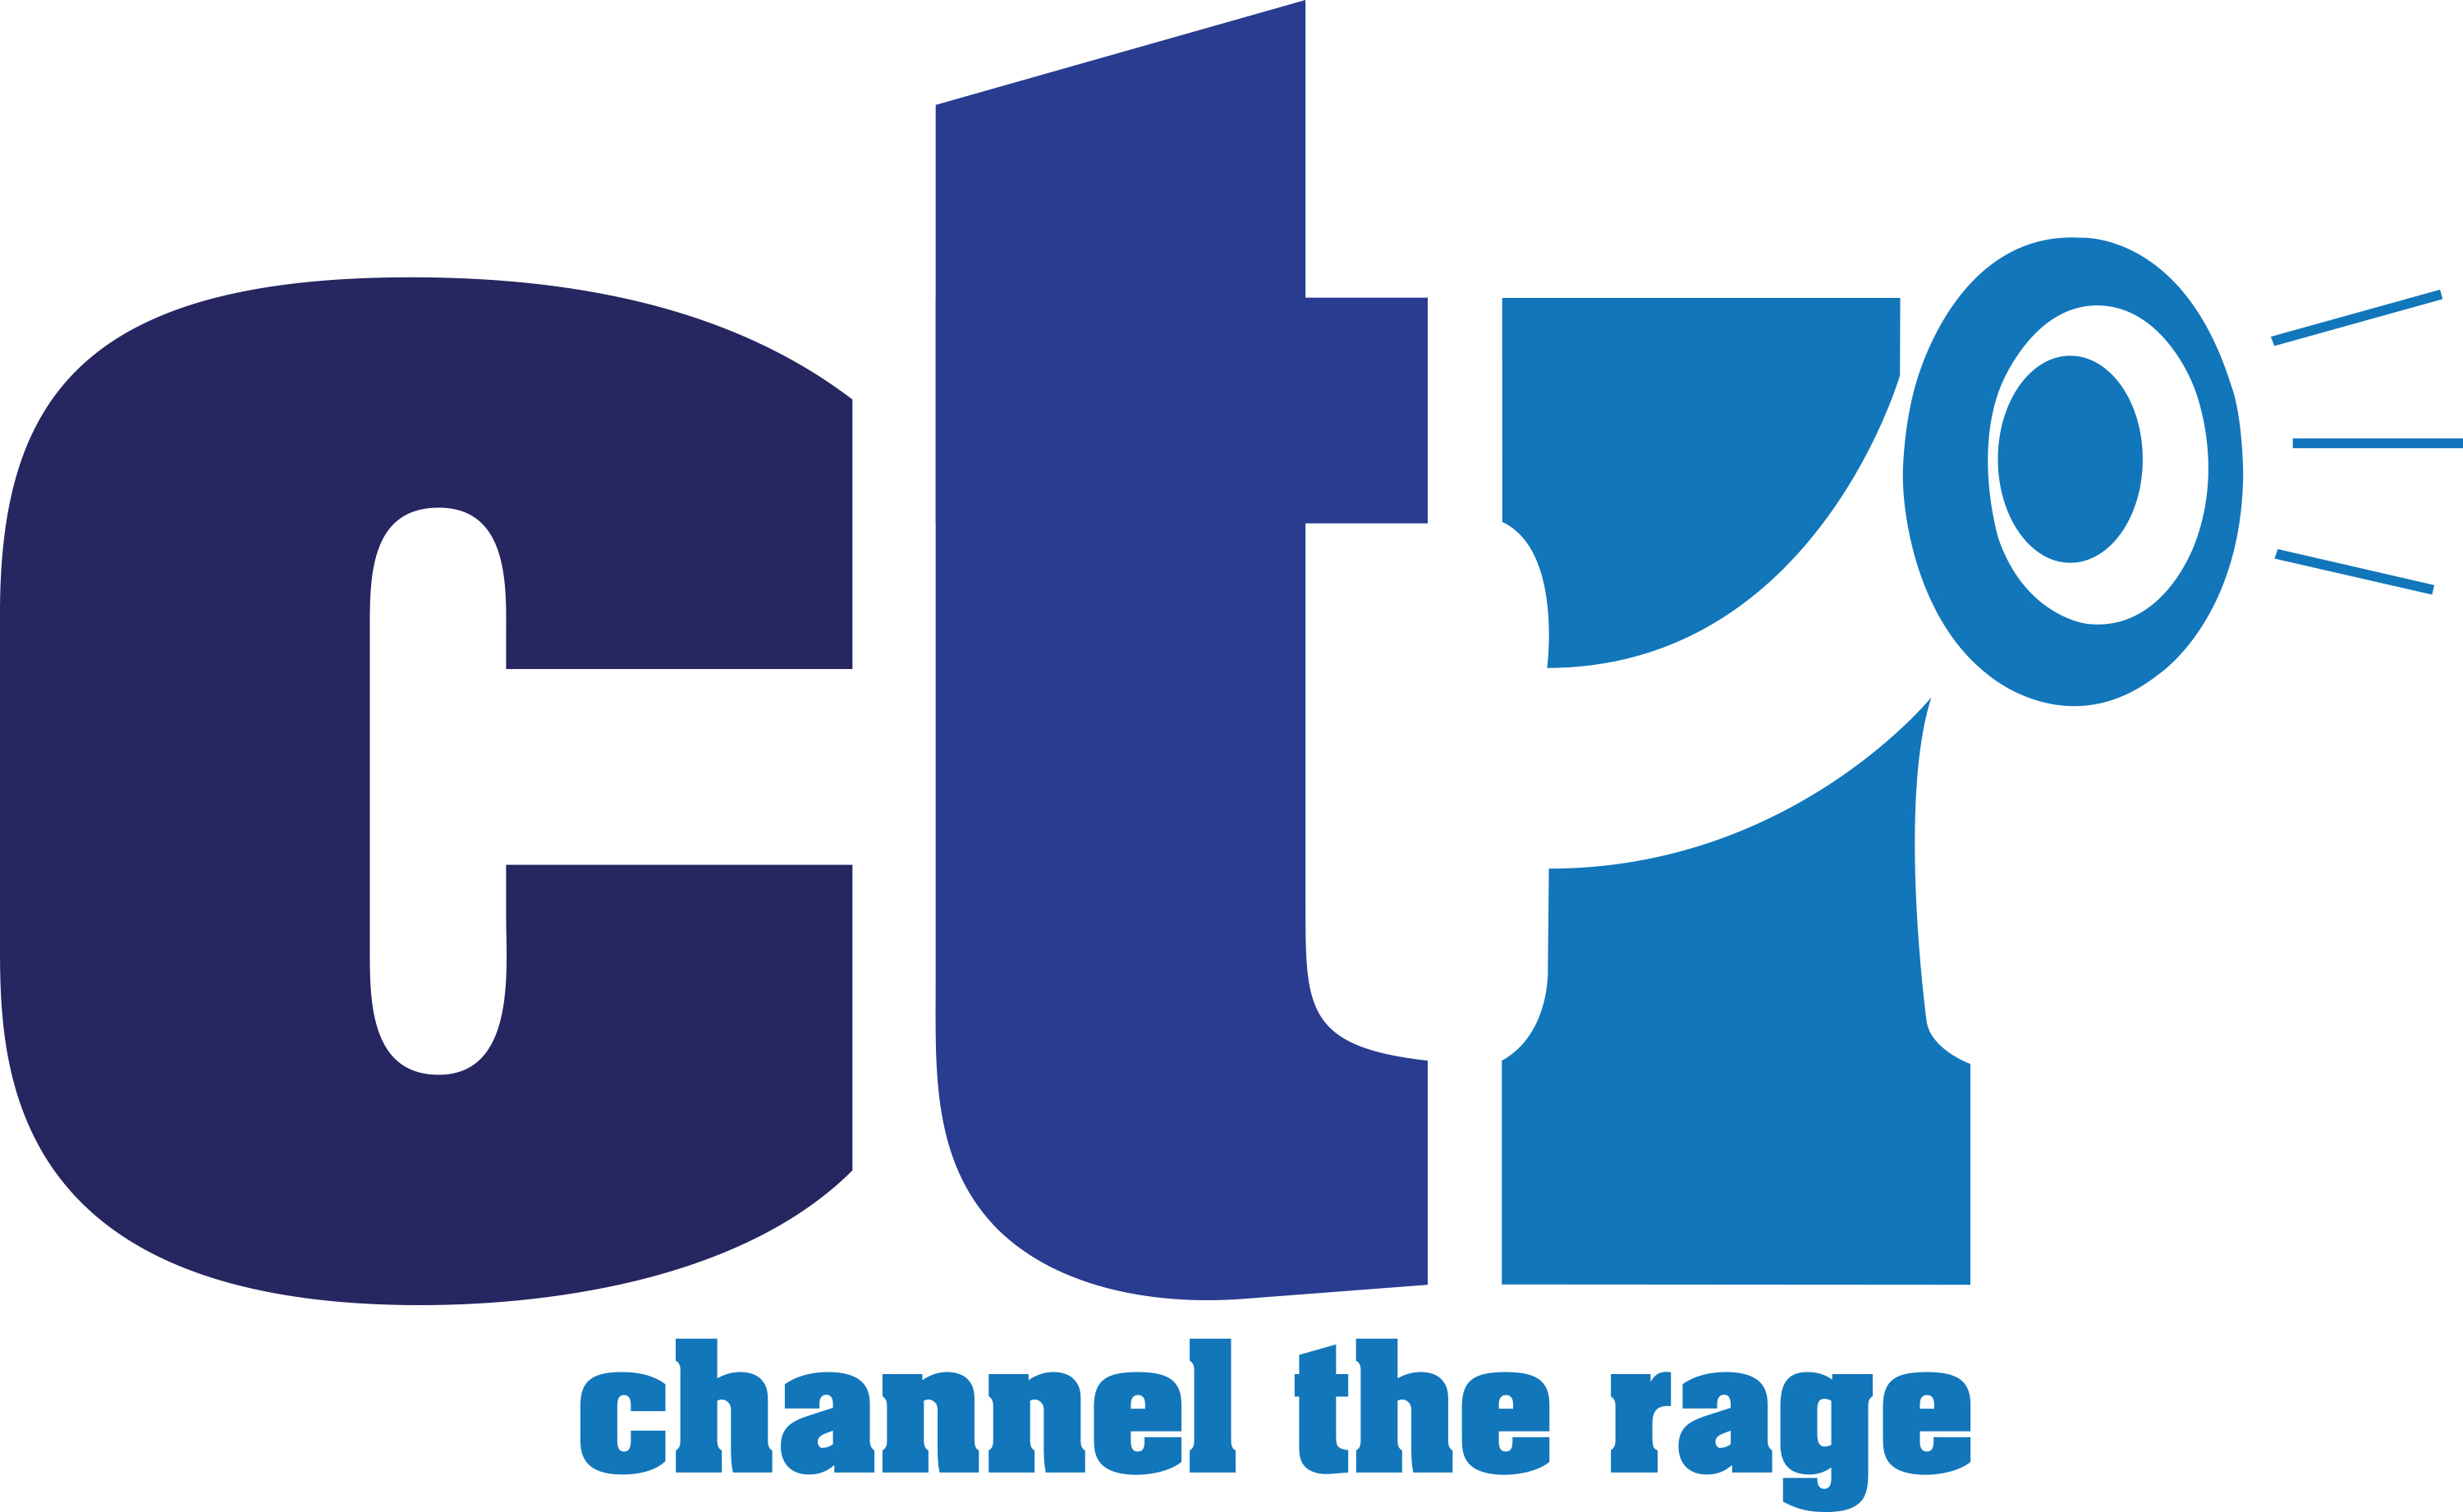 Episode 119: The Next Bosnian Muslim Genocide? show art